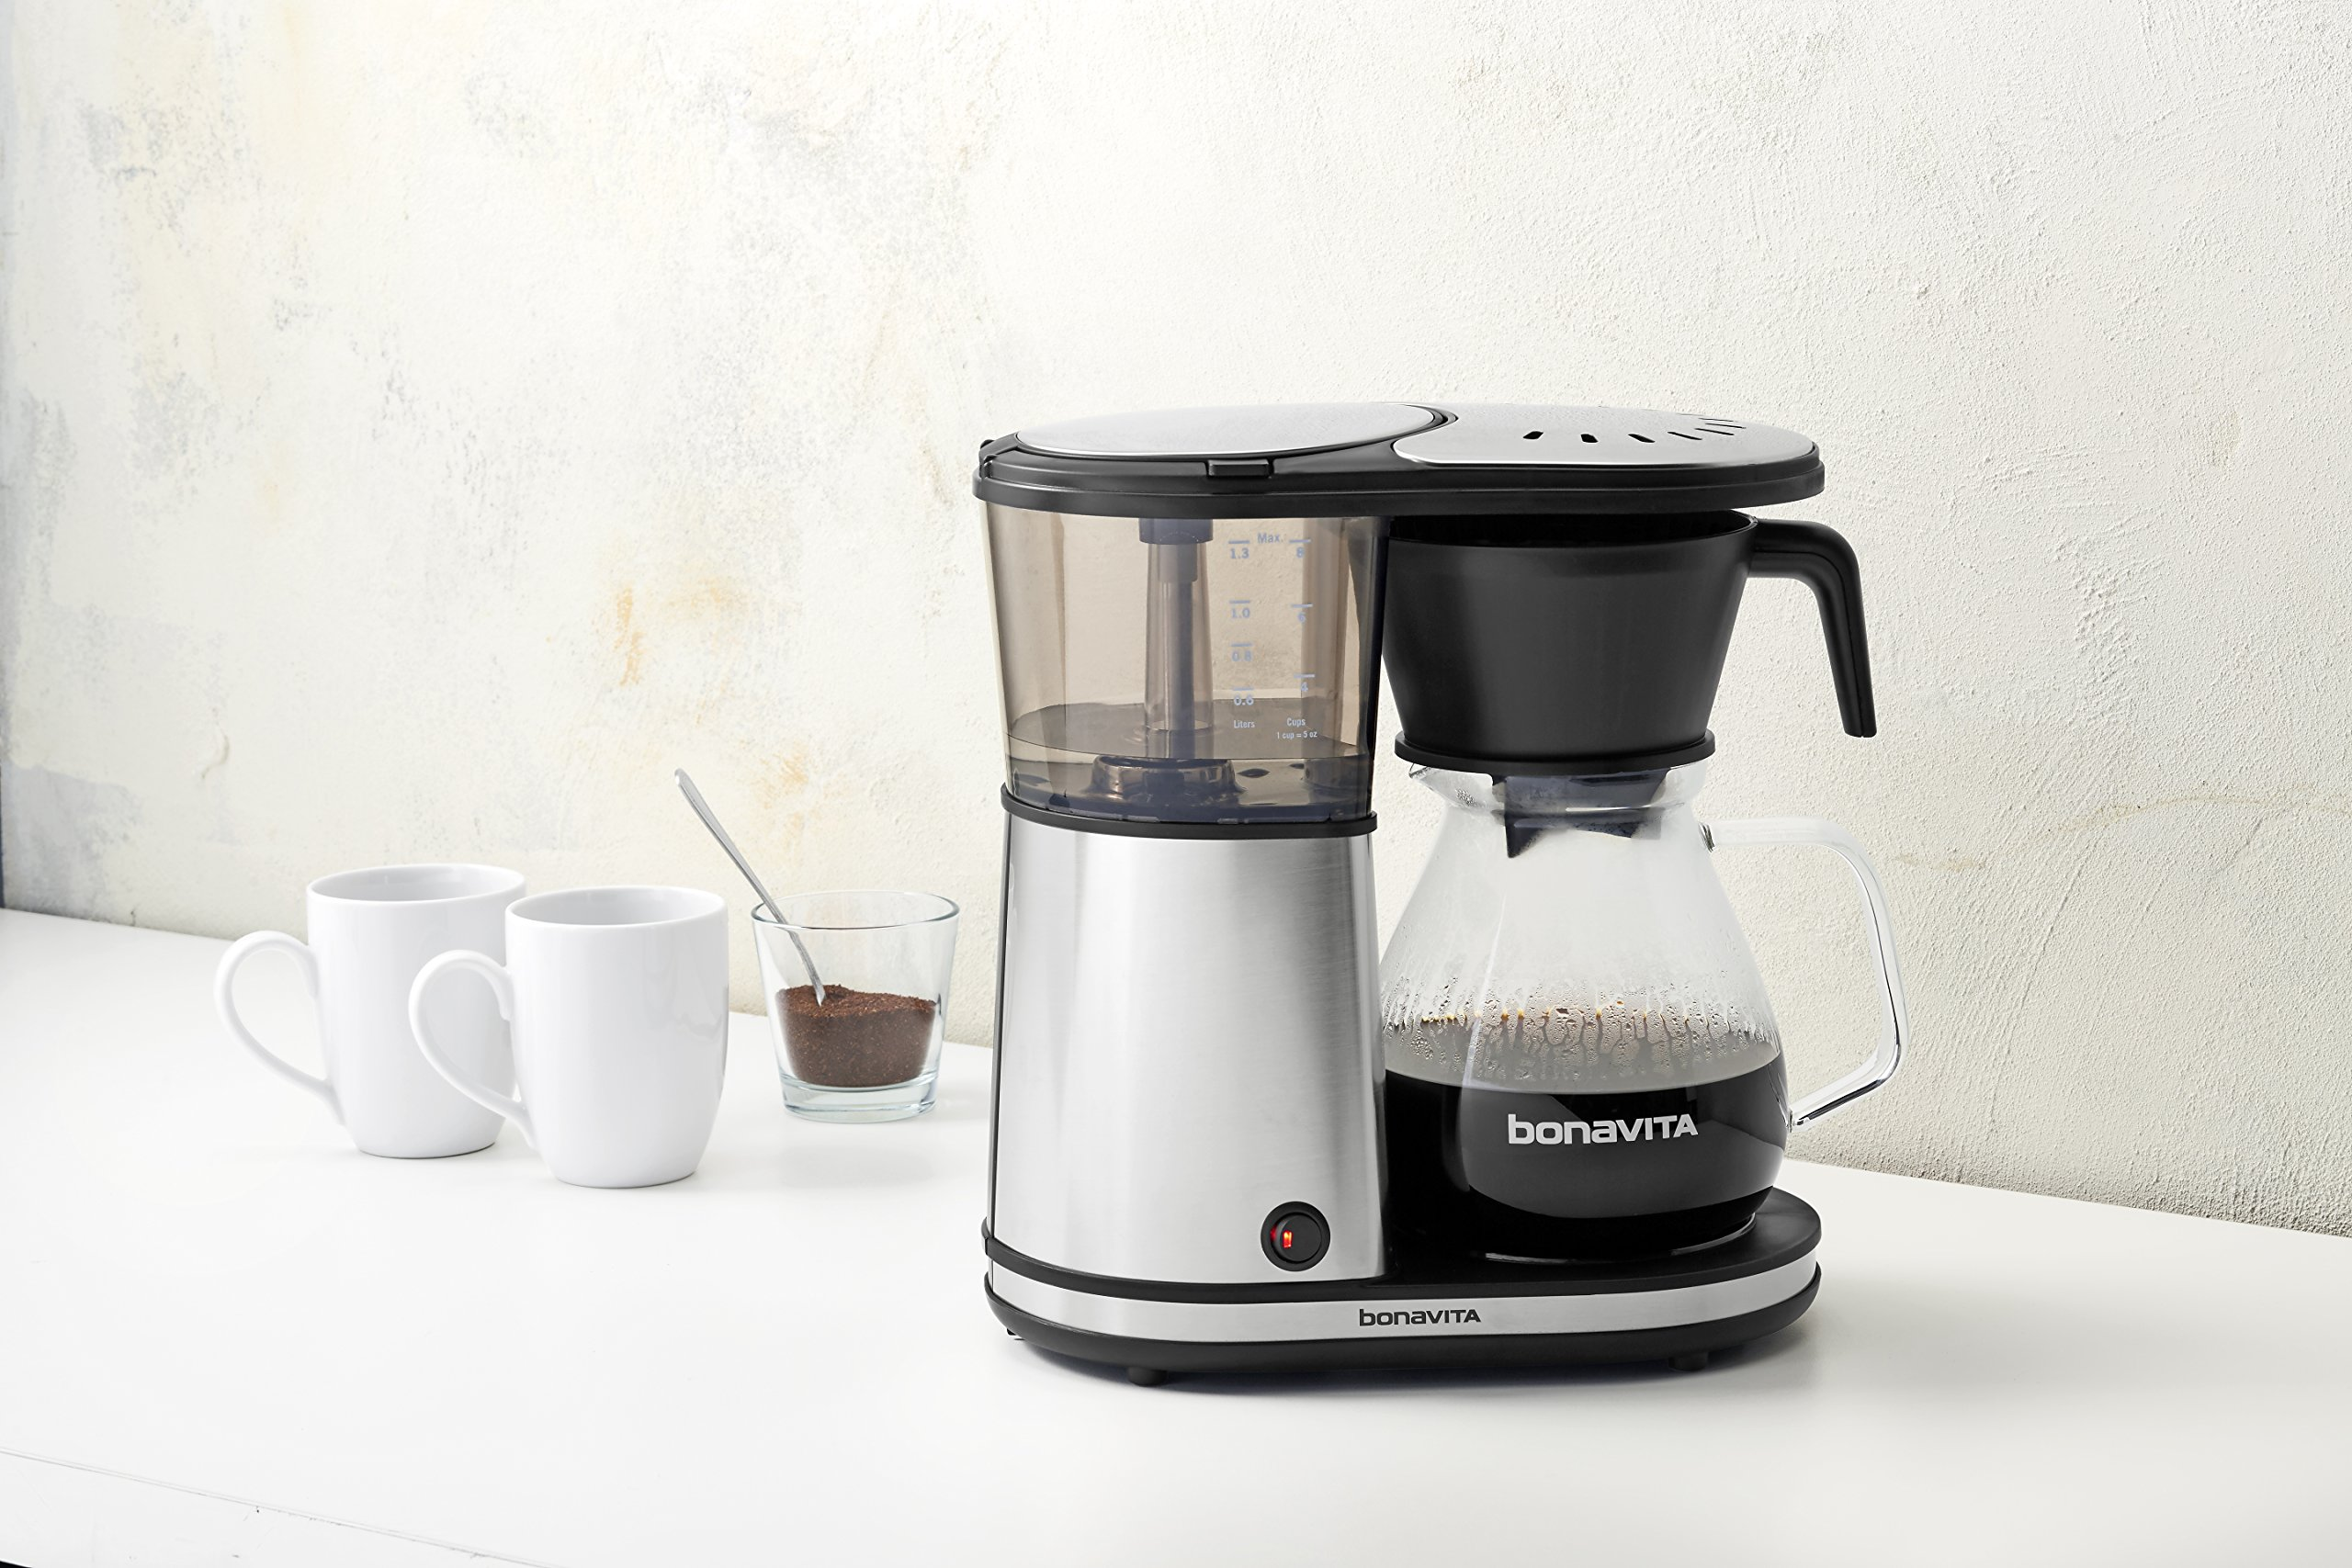 Bonavita BV1901GW 8-Cup One-Touch Coffee Maker Featuring Glass Carafe and Warming Plate by Bonavita (Image #3)